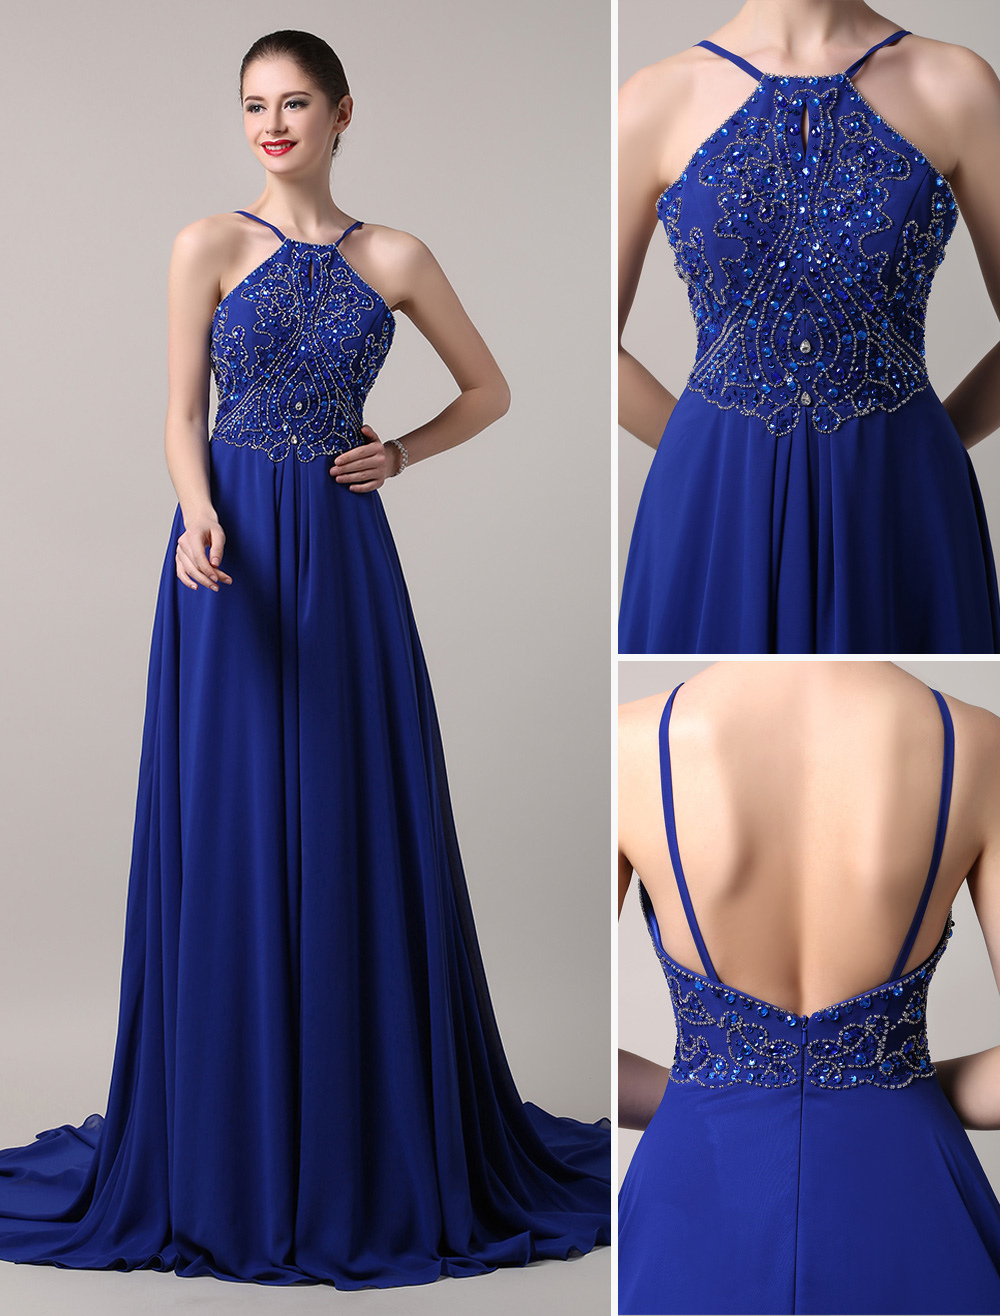 Buy Blue Prom Dress 2018 Long Chiffon Beaded Evening Dress Royal Blue Backless Party Dress With Train for $152.99 in Milanoo store